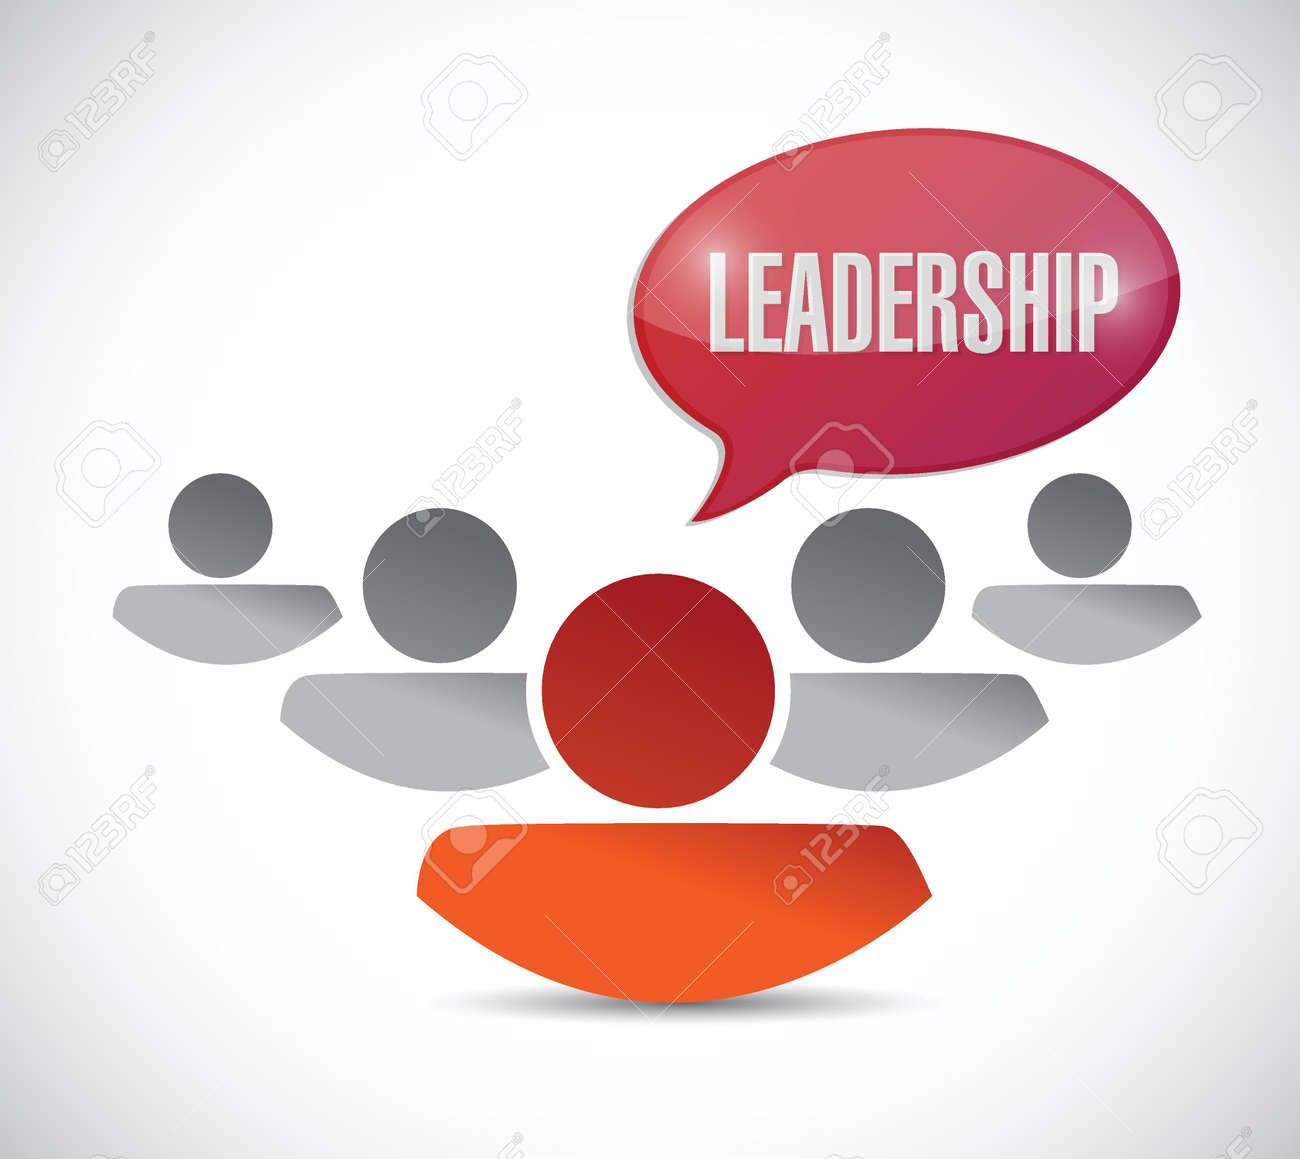 leadership sign and team illustration design over a white background Stock Vector - 28171931